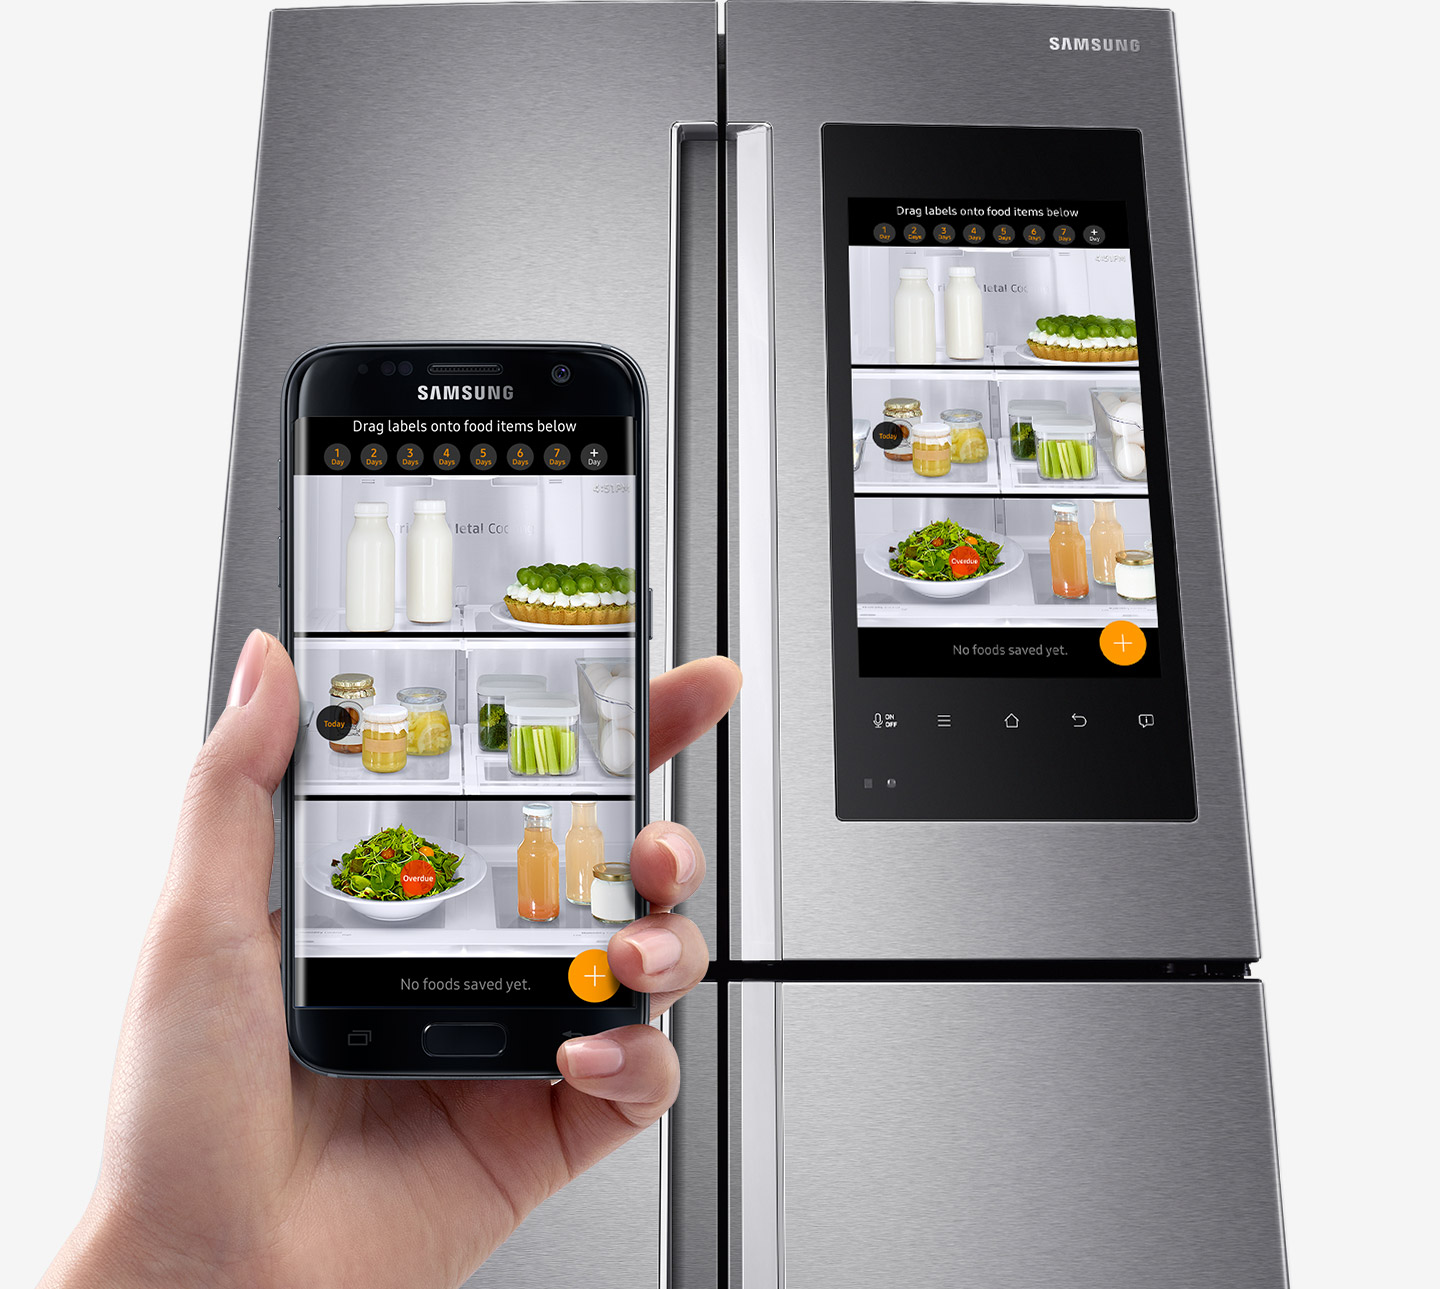 Samsung Family Hub il frigo smart con Android arriva in ItaliaBlognews24com